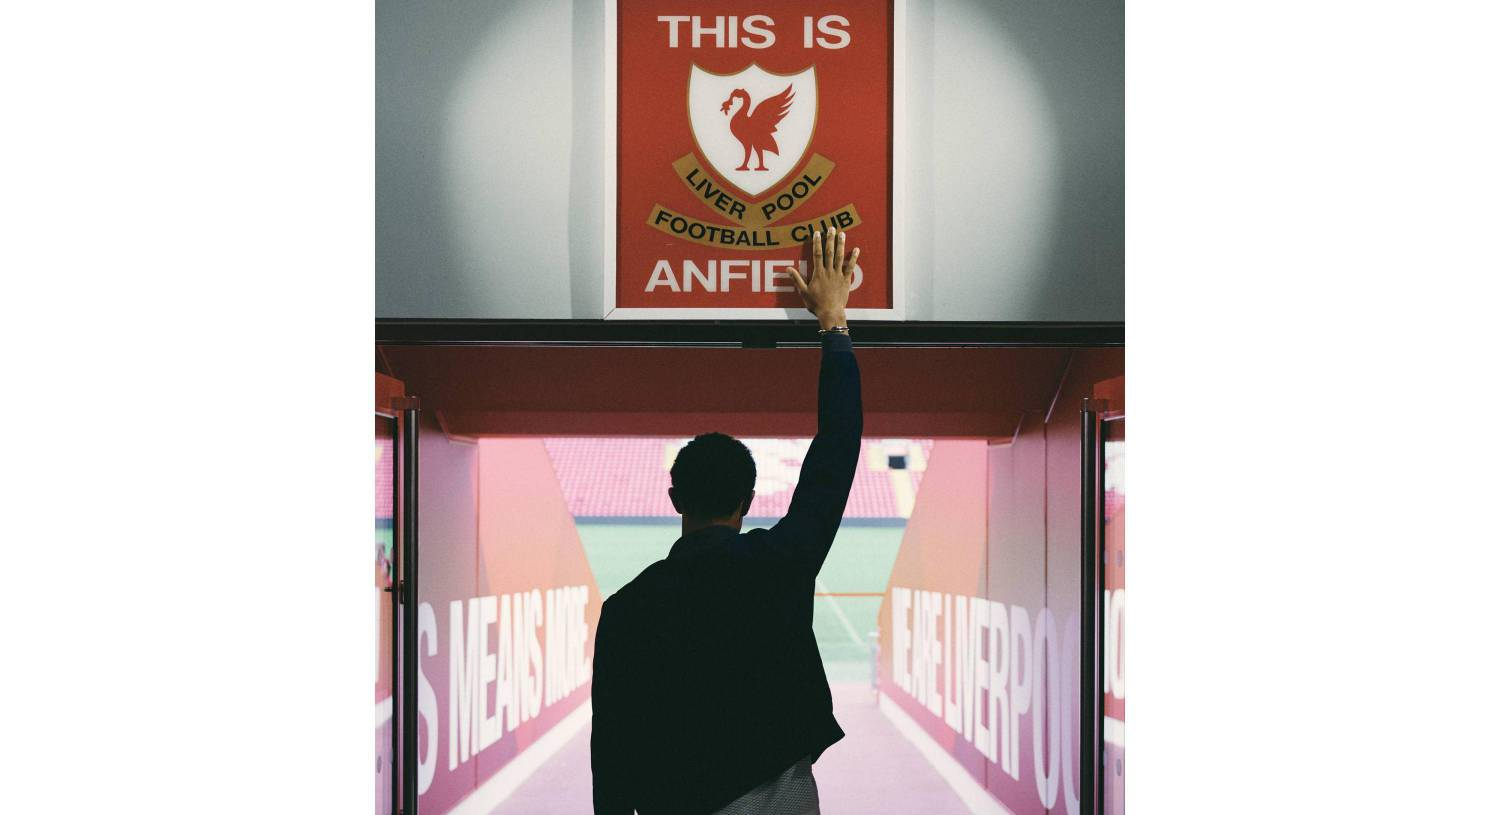 Paul Rouse: Even when empty, Anfield retains a special aura